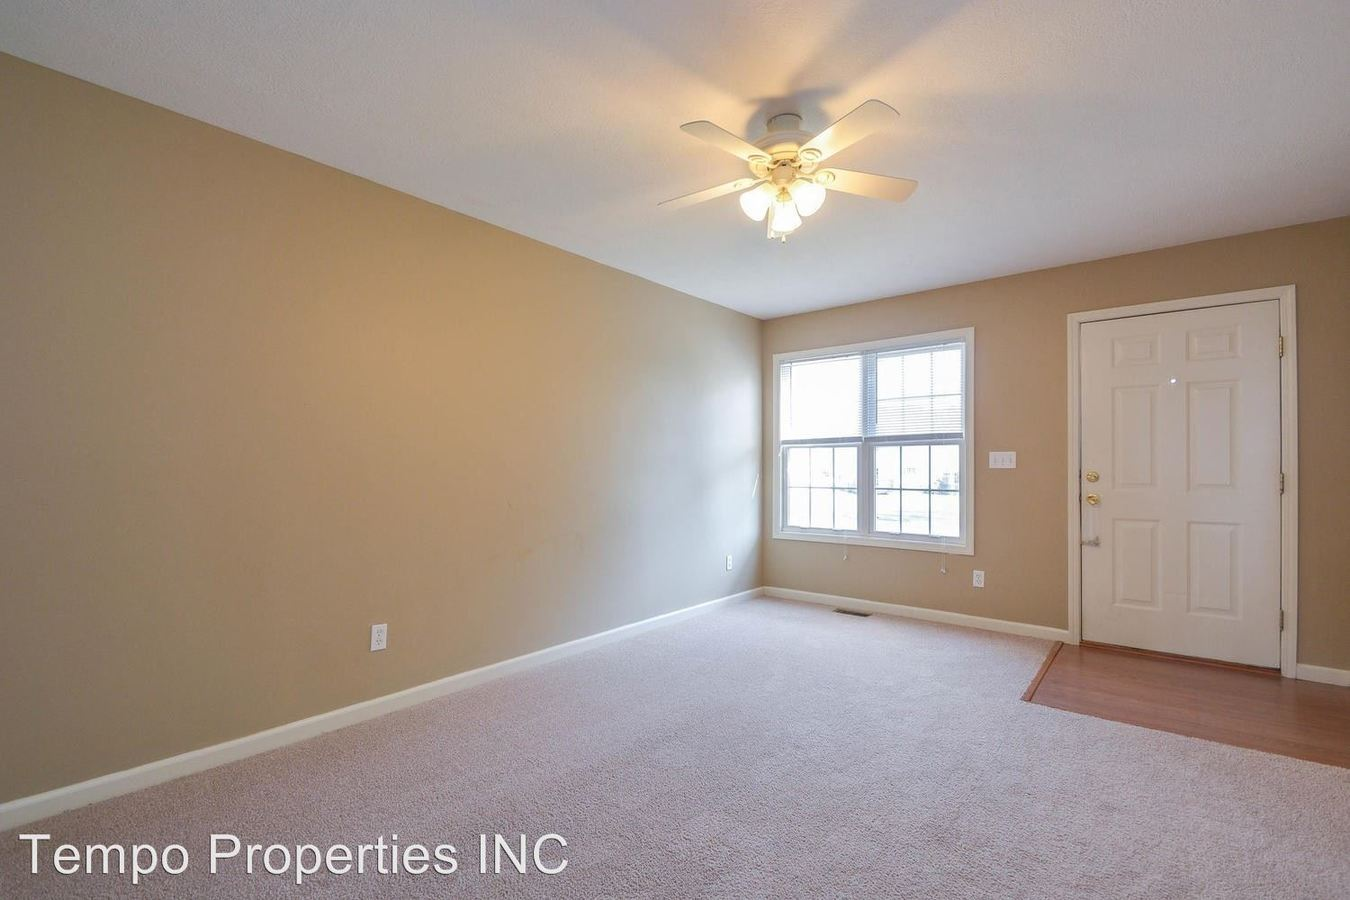 3 Bedrooms 2 Bathrooms Apartment for rent at 3999 S Cramer Cir. in Bloomington, IN